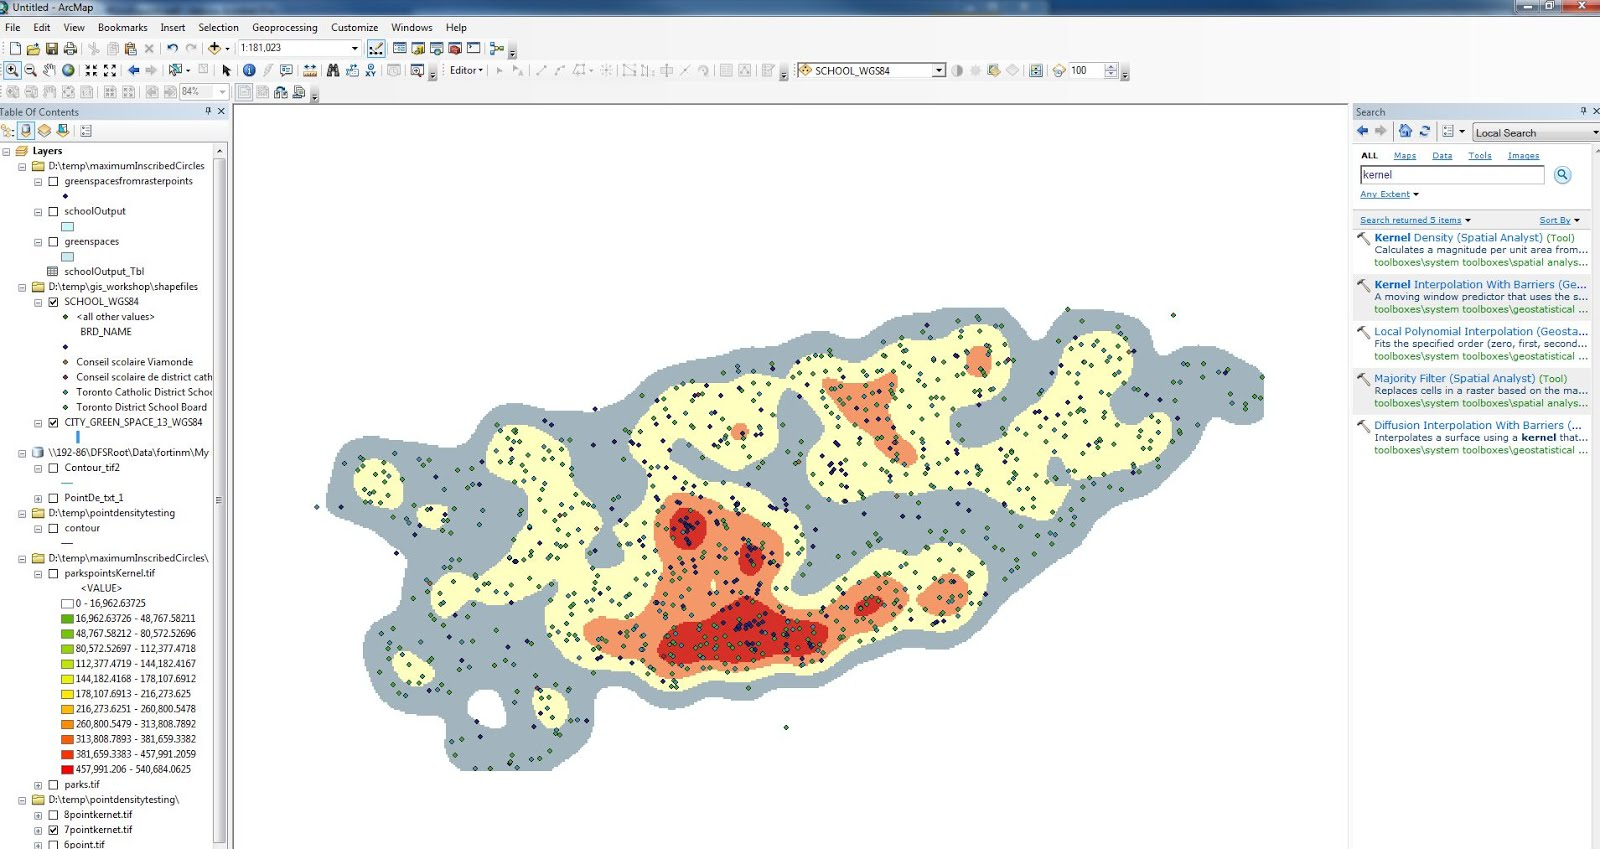 Map and Data Library, University of Toronto: ArcMap Kernel